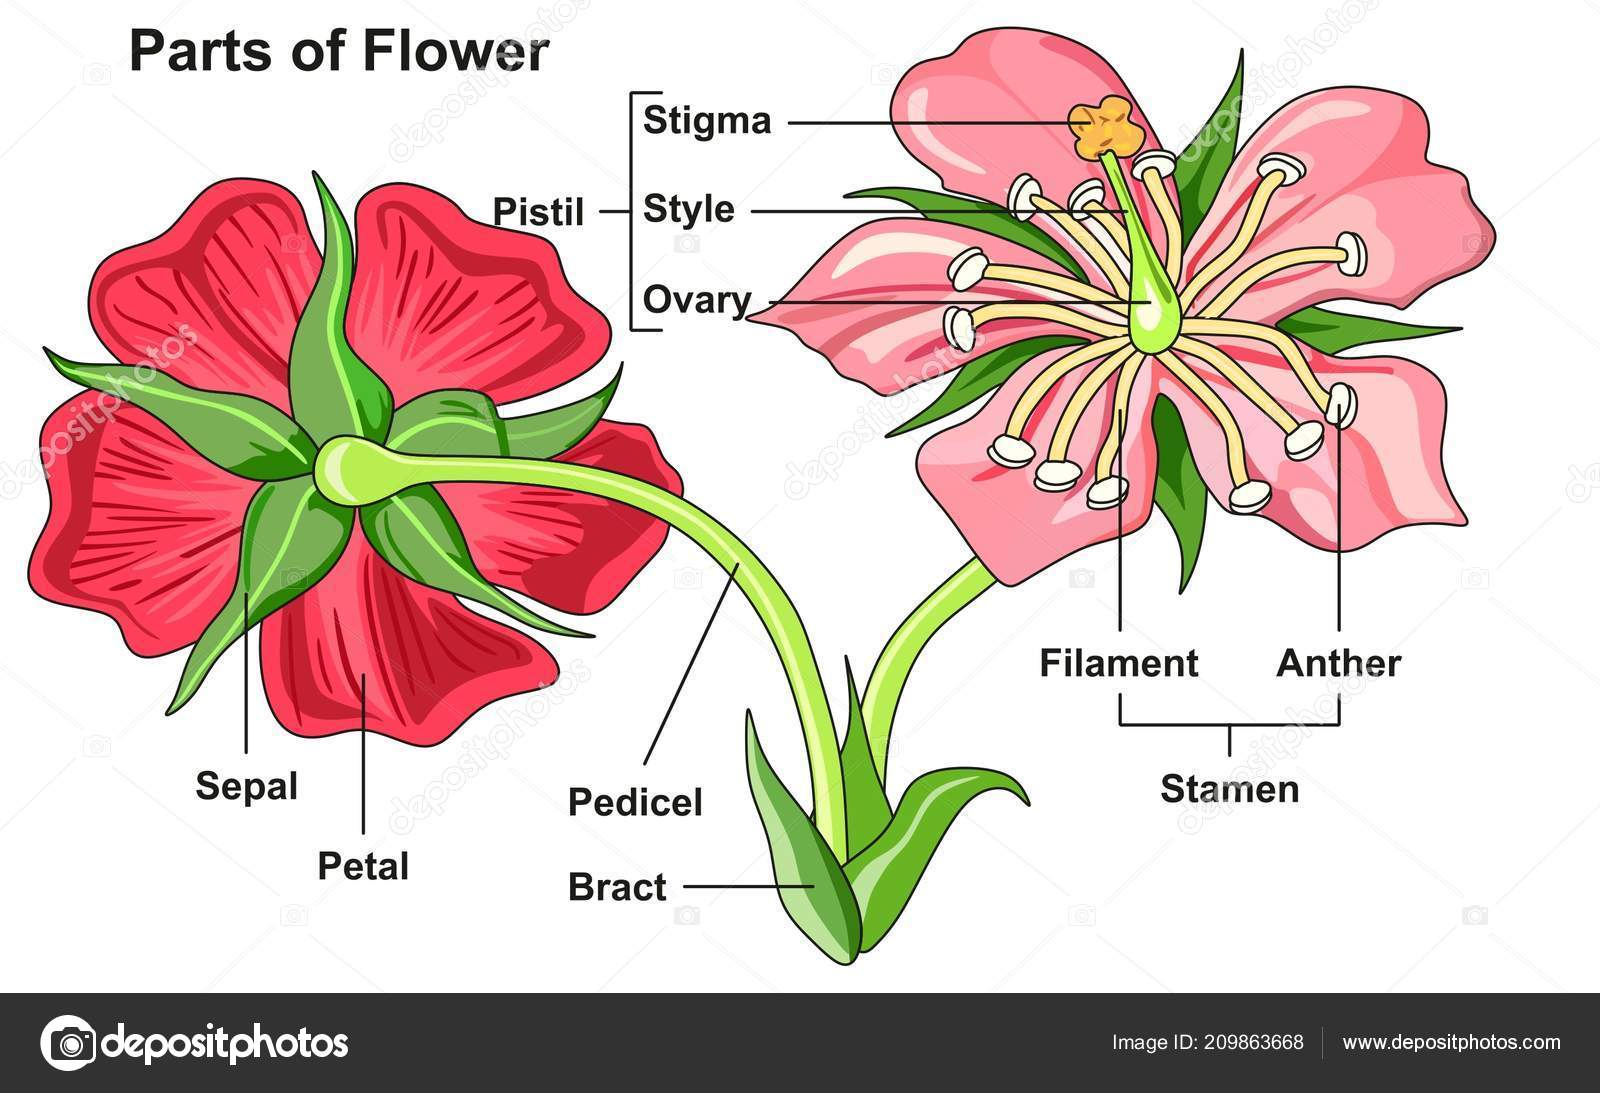 Labeled Flower Parts Diagram Front Back View All Parts Labeled — Stock Vector